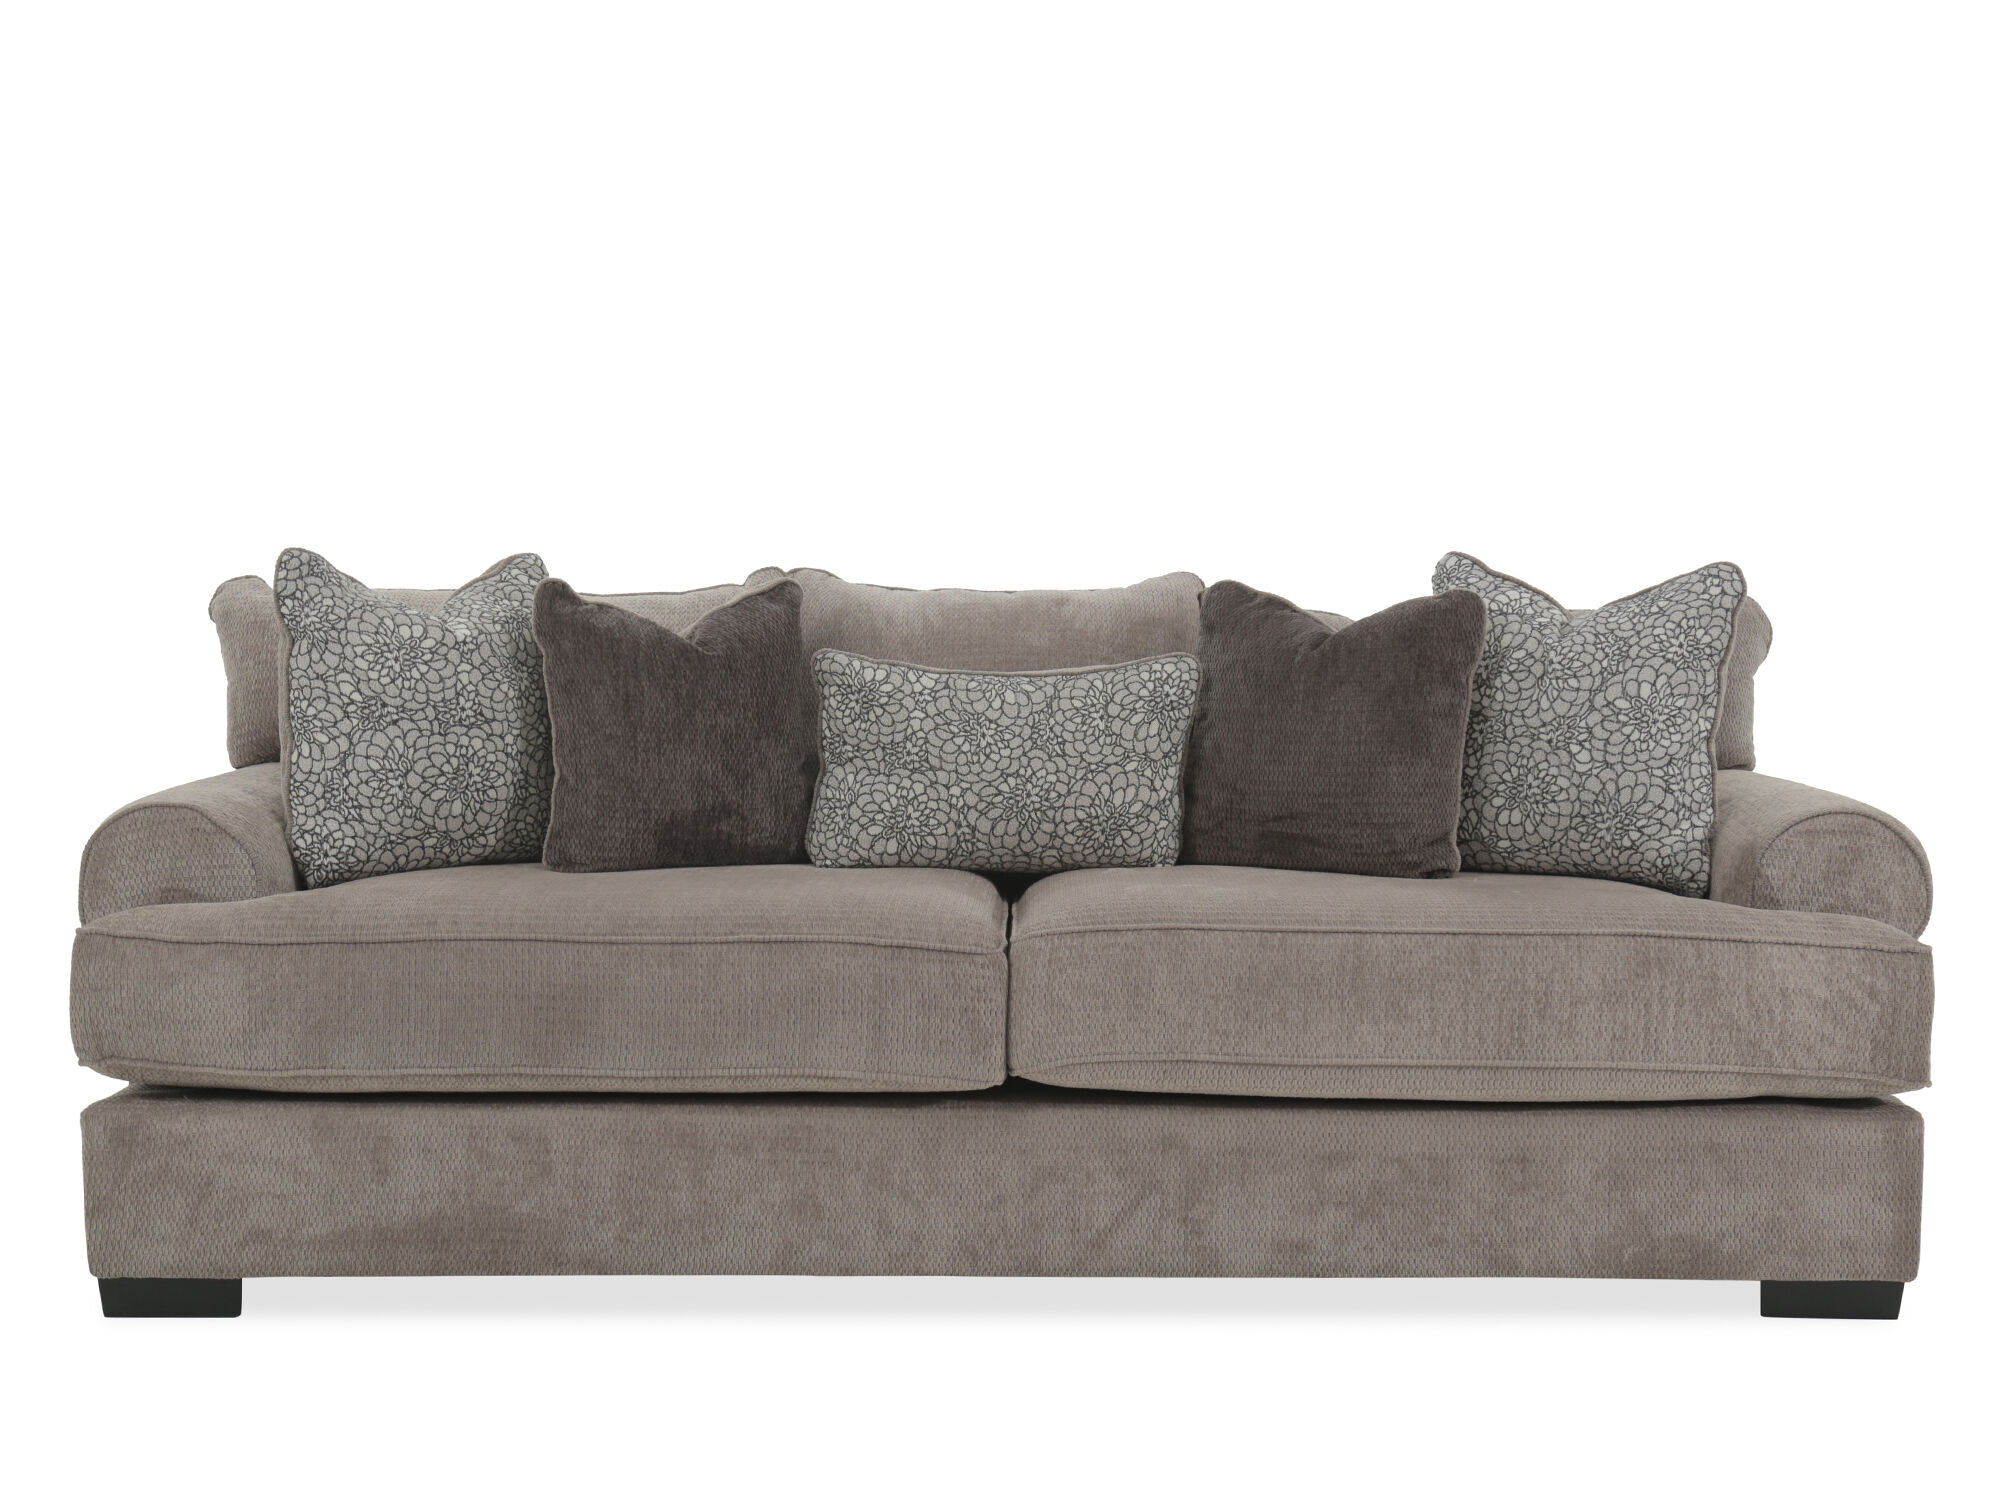 images low profile 96 quot sofa in gray